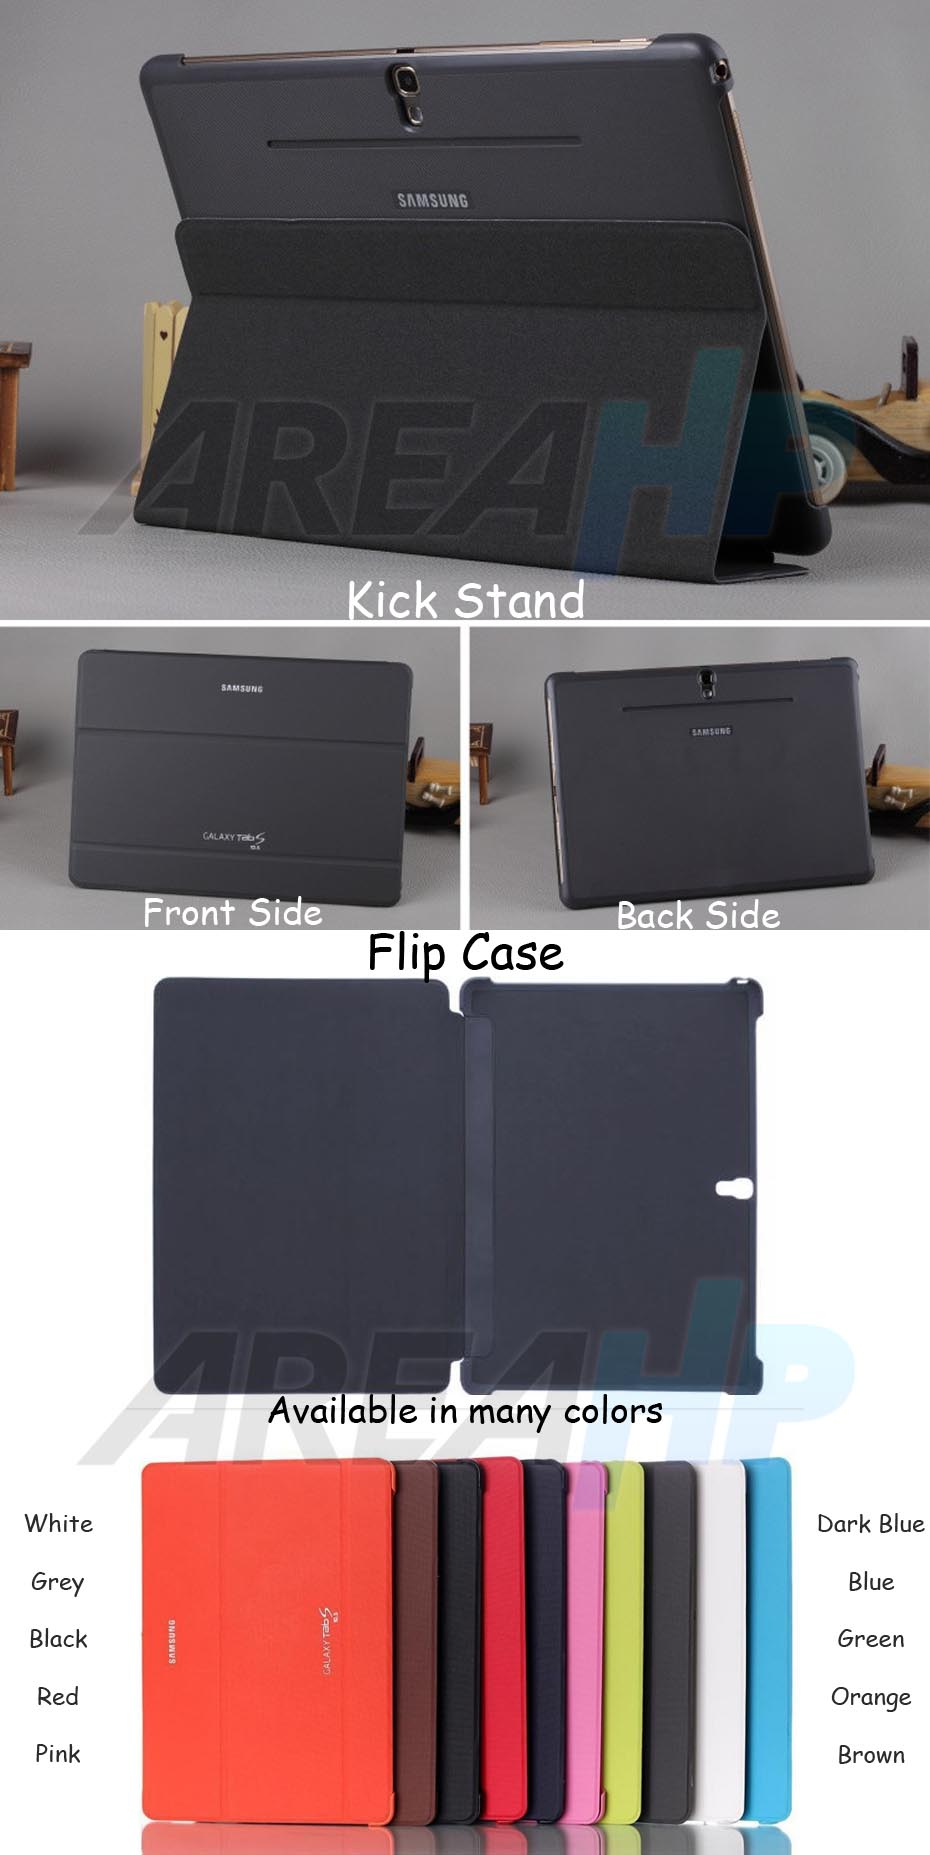 Book Cover Case for Samsung Galaxy Tab A 10.1 2016 Overview